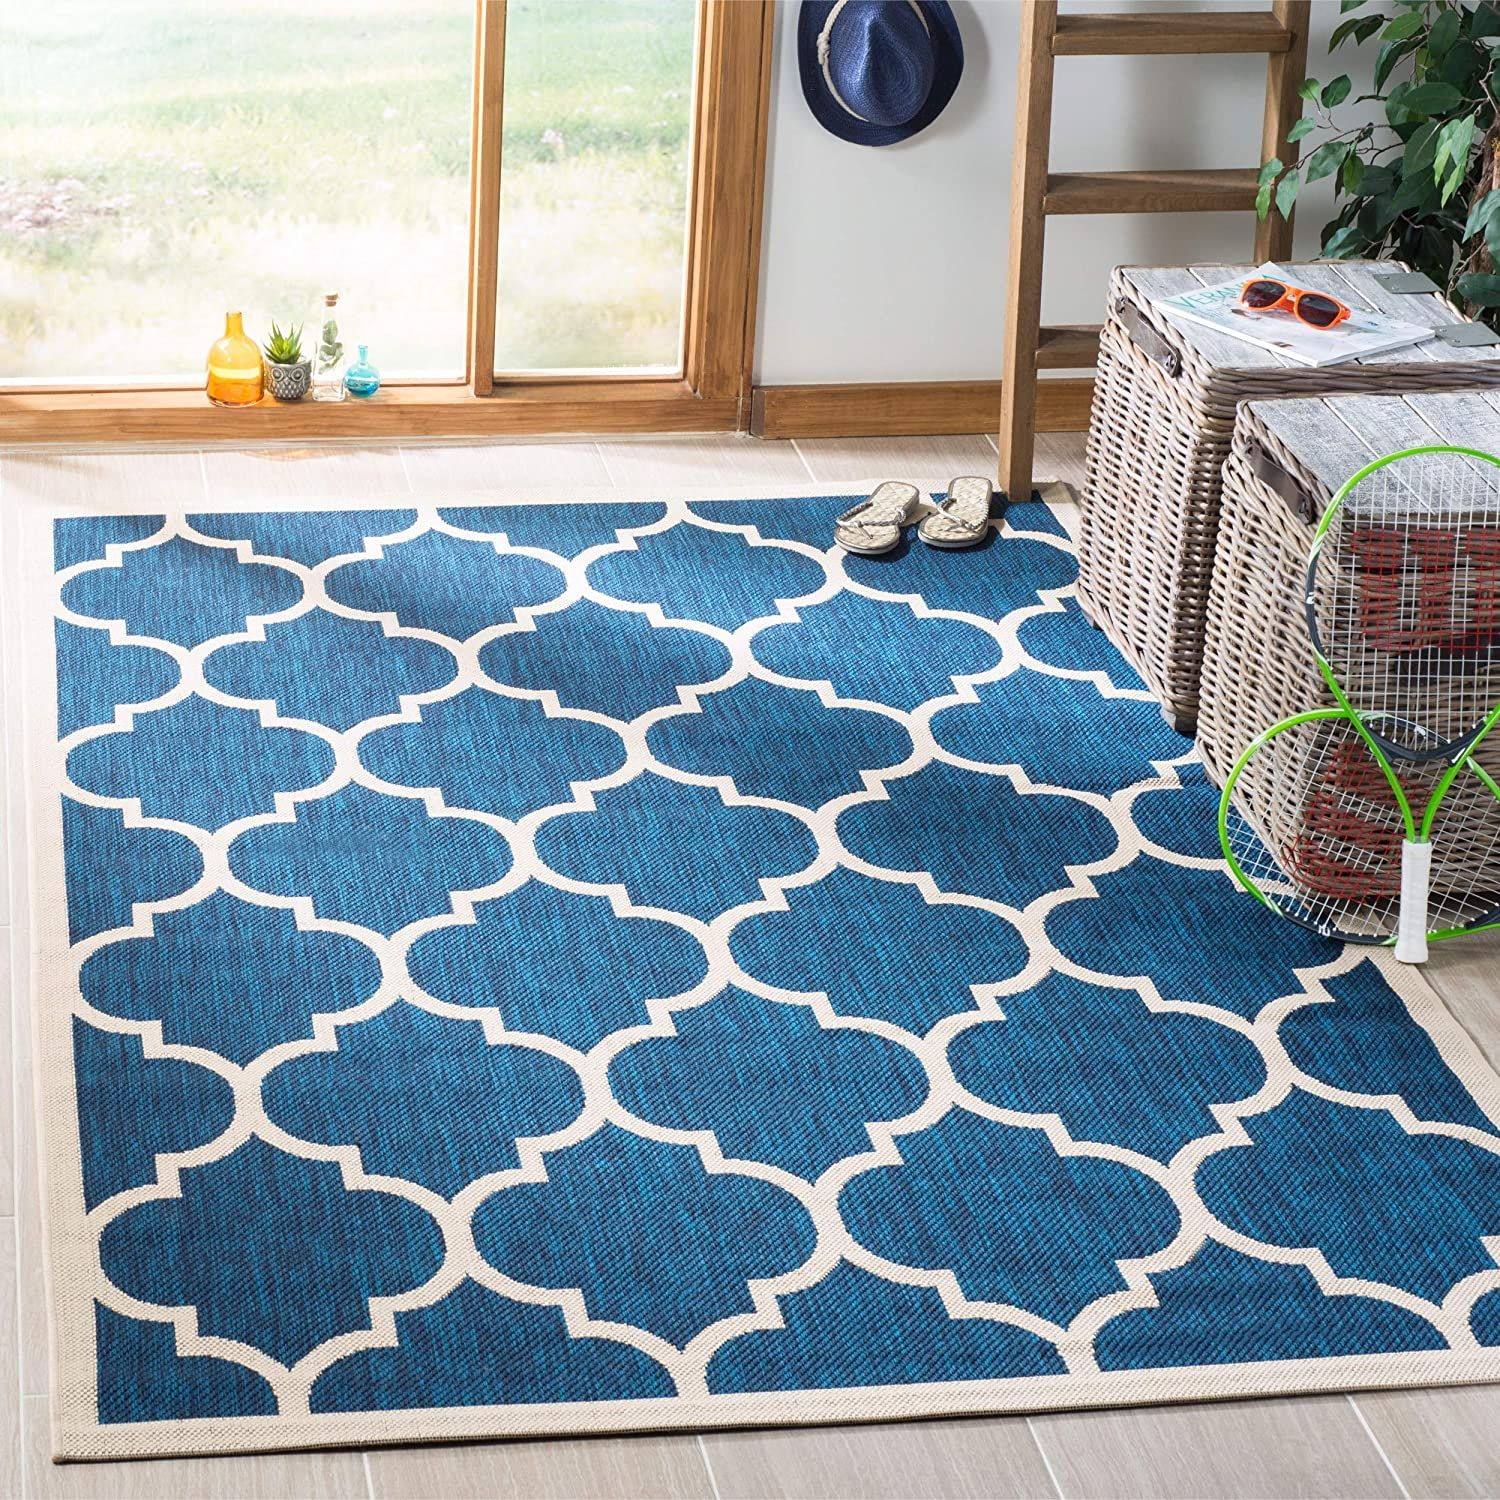 Safavieh Courtyard Collection Cy6914 268 Navy And Beige Indoor Outdoor Area Rug 4 X 5 7 Details Can Be Found By Clicking In 2020 With Images Outdoor Rugs Outdoor Area Rugs